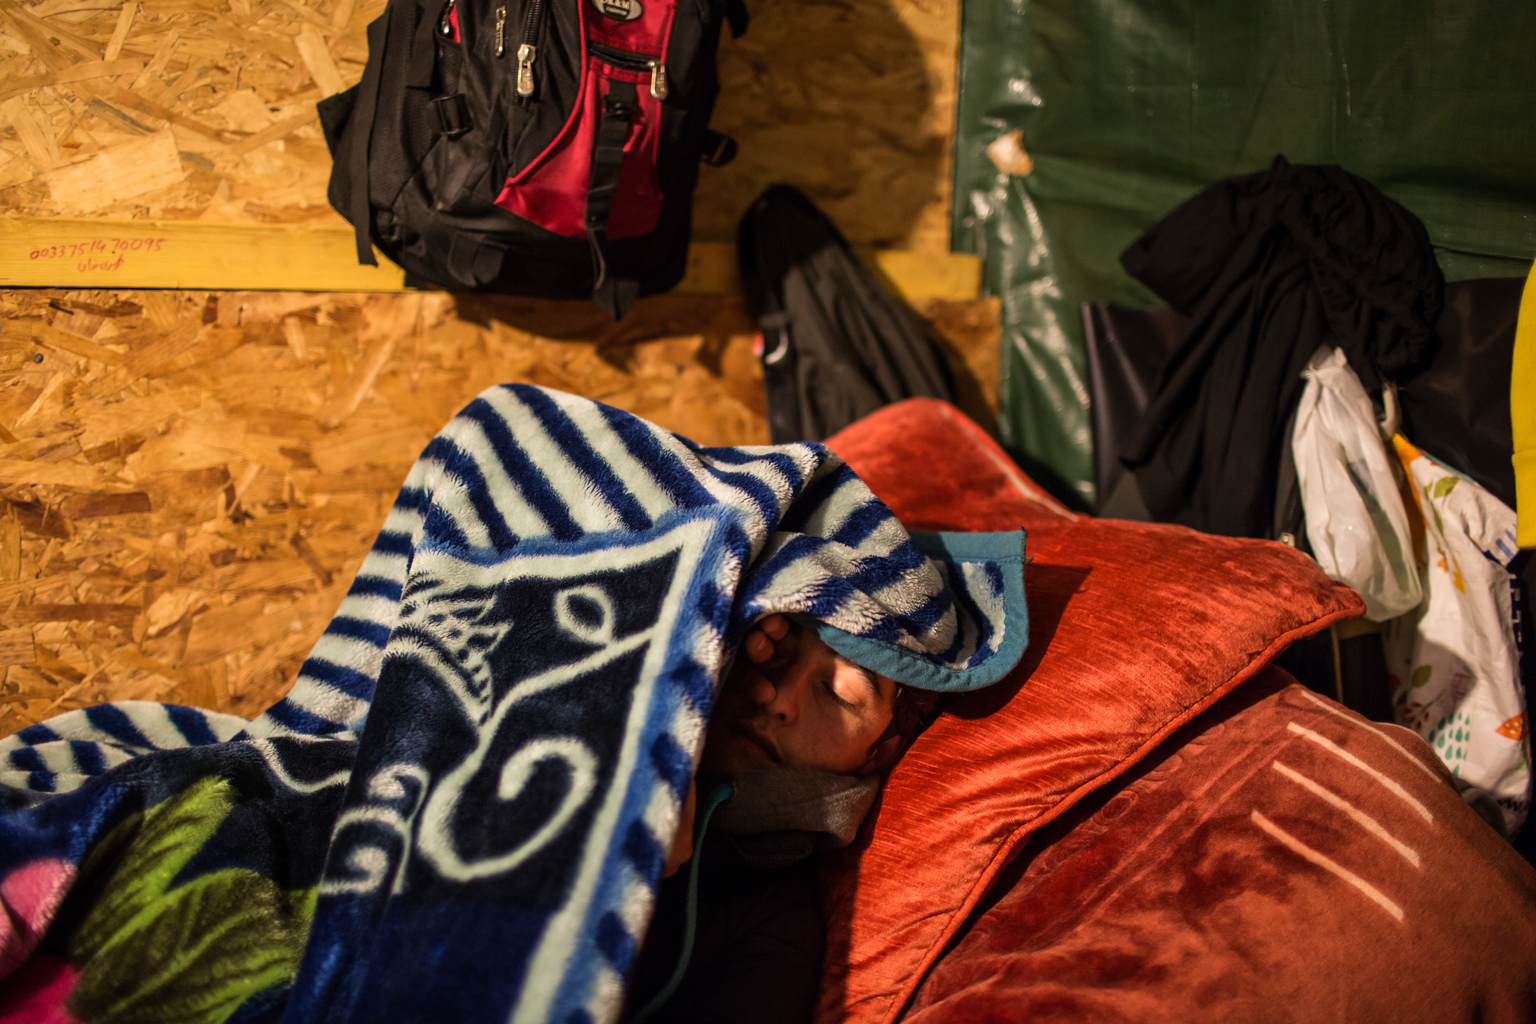 Mirzal, 16, arrived in Calais alone in 2015